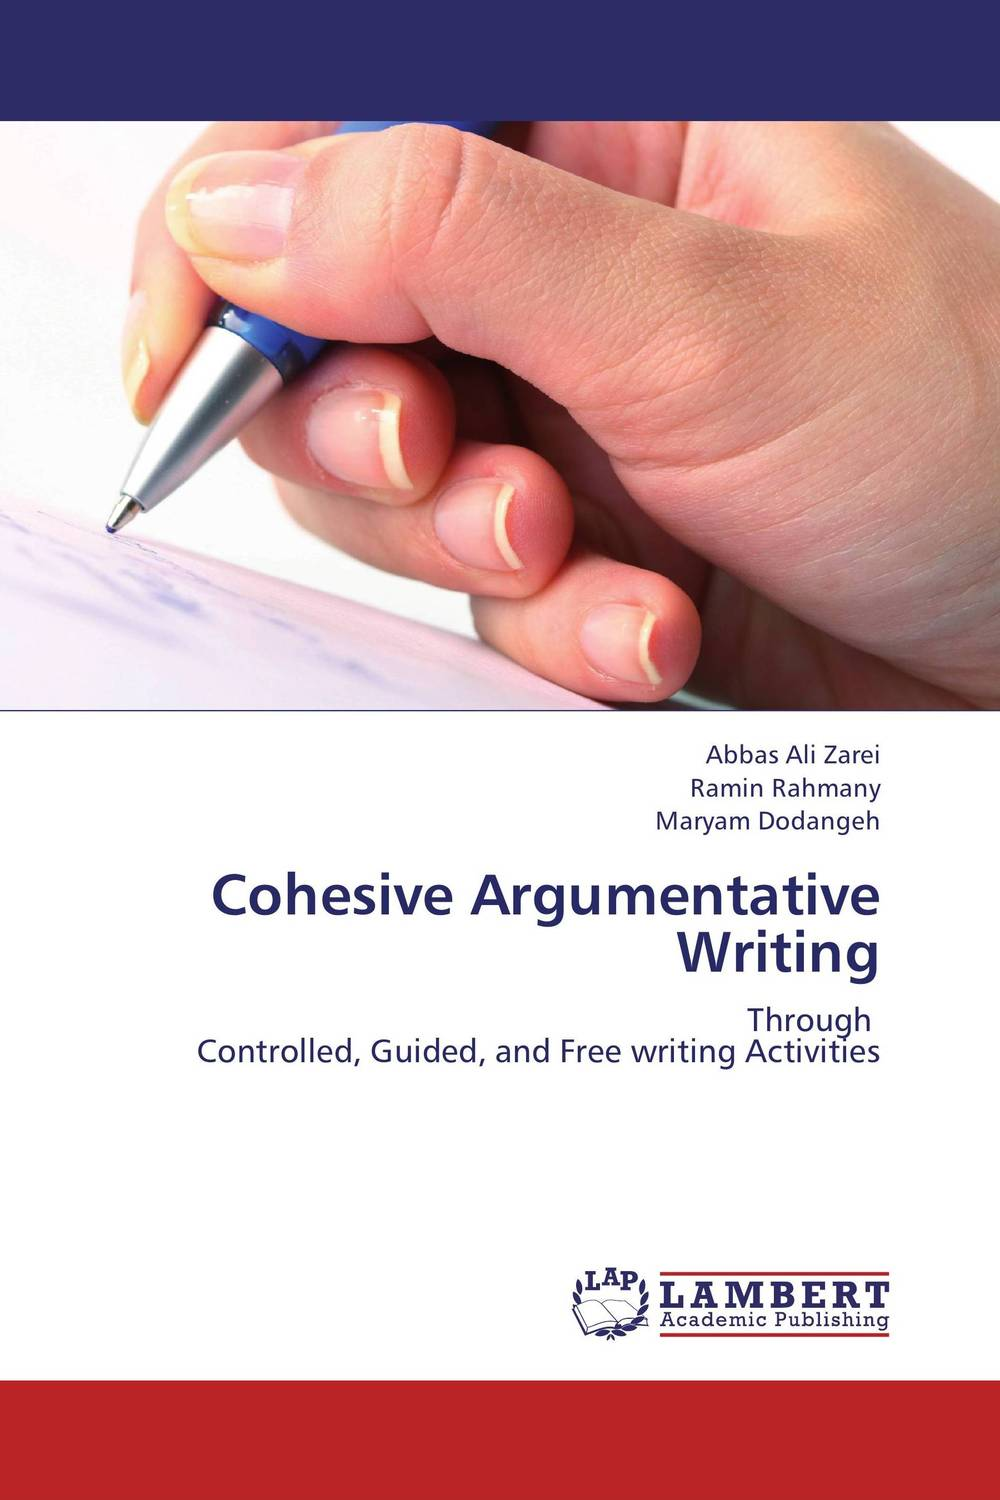 Cohesive Argumentative Writing